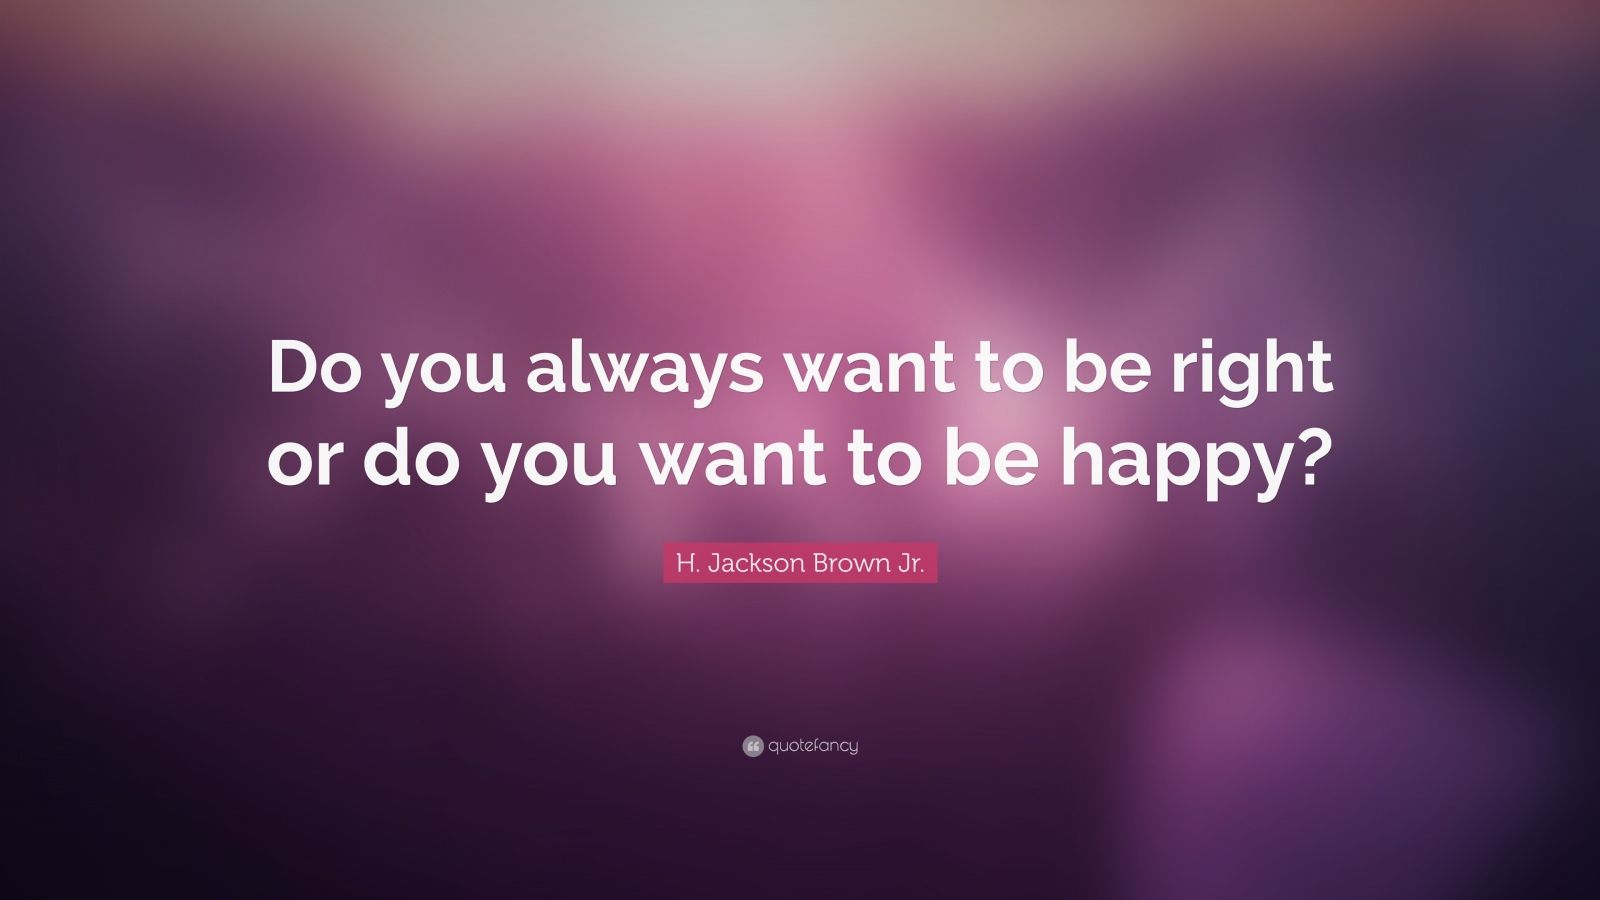 "H. Jackson Brown Jr. Quote: ""Do you always want to be right or do you want to be happy?"""